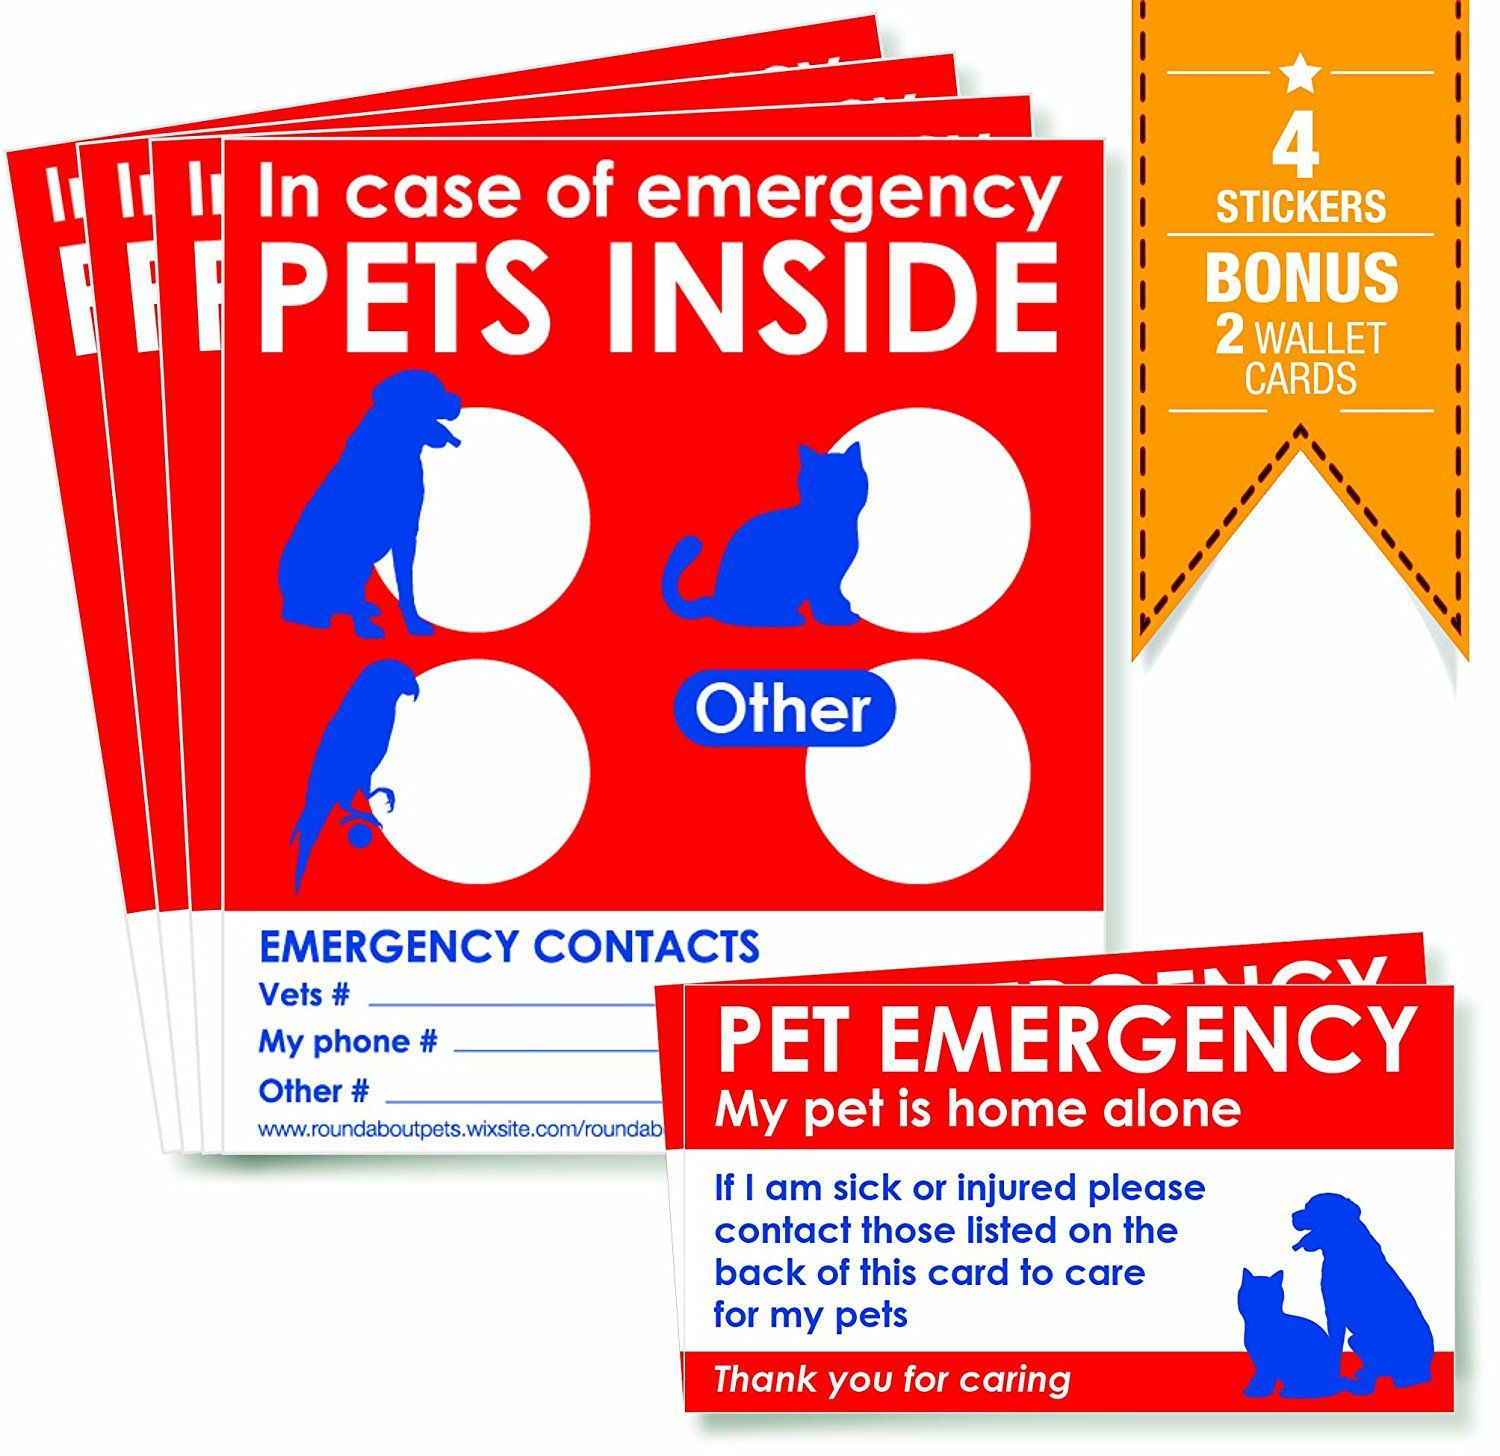 Pets Rescue Stickers X 4 With Bonus Pet Home Alone Wallet Cards X 2 Alert Emergency First Responders To Pets Inside Home Det Pet Home Pet Emergency Pets